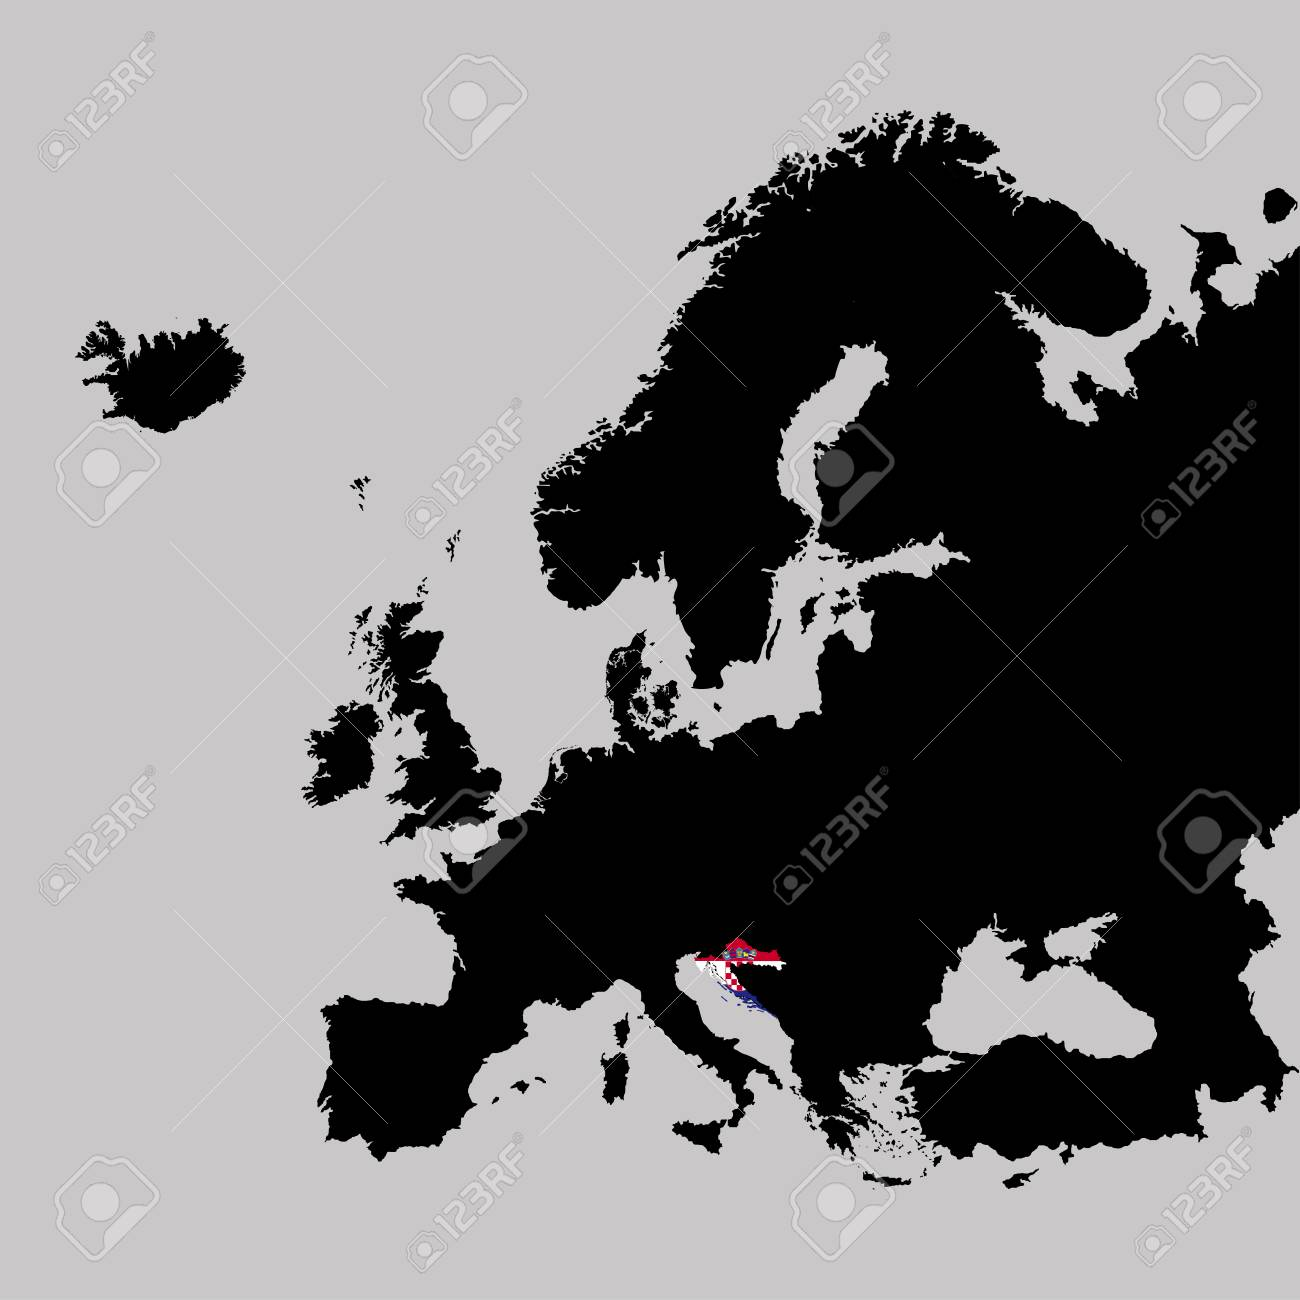 Territory Of Croatia On Europe Map On A Grey Background Royalty Free